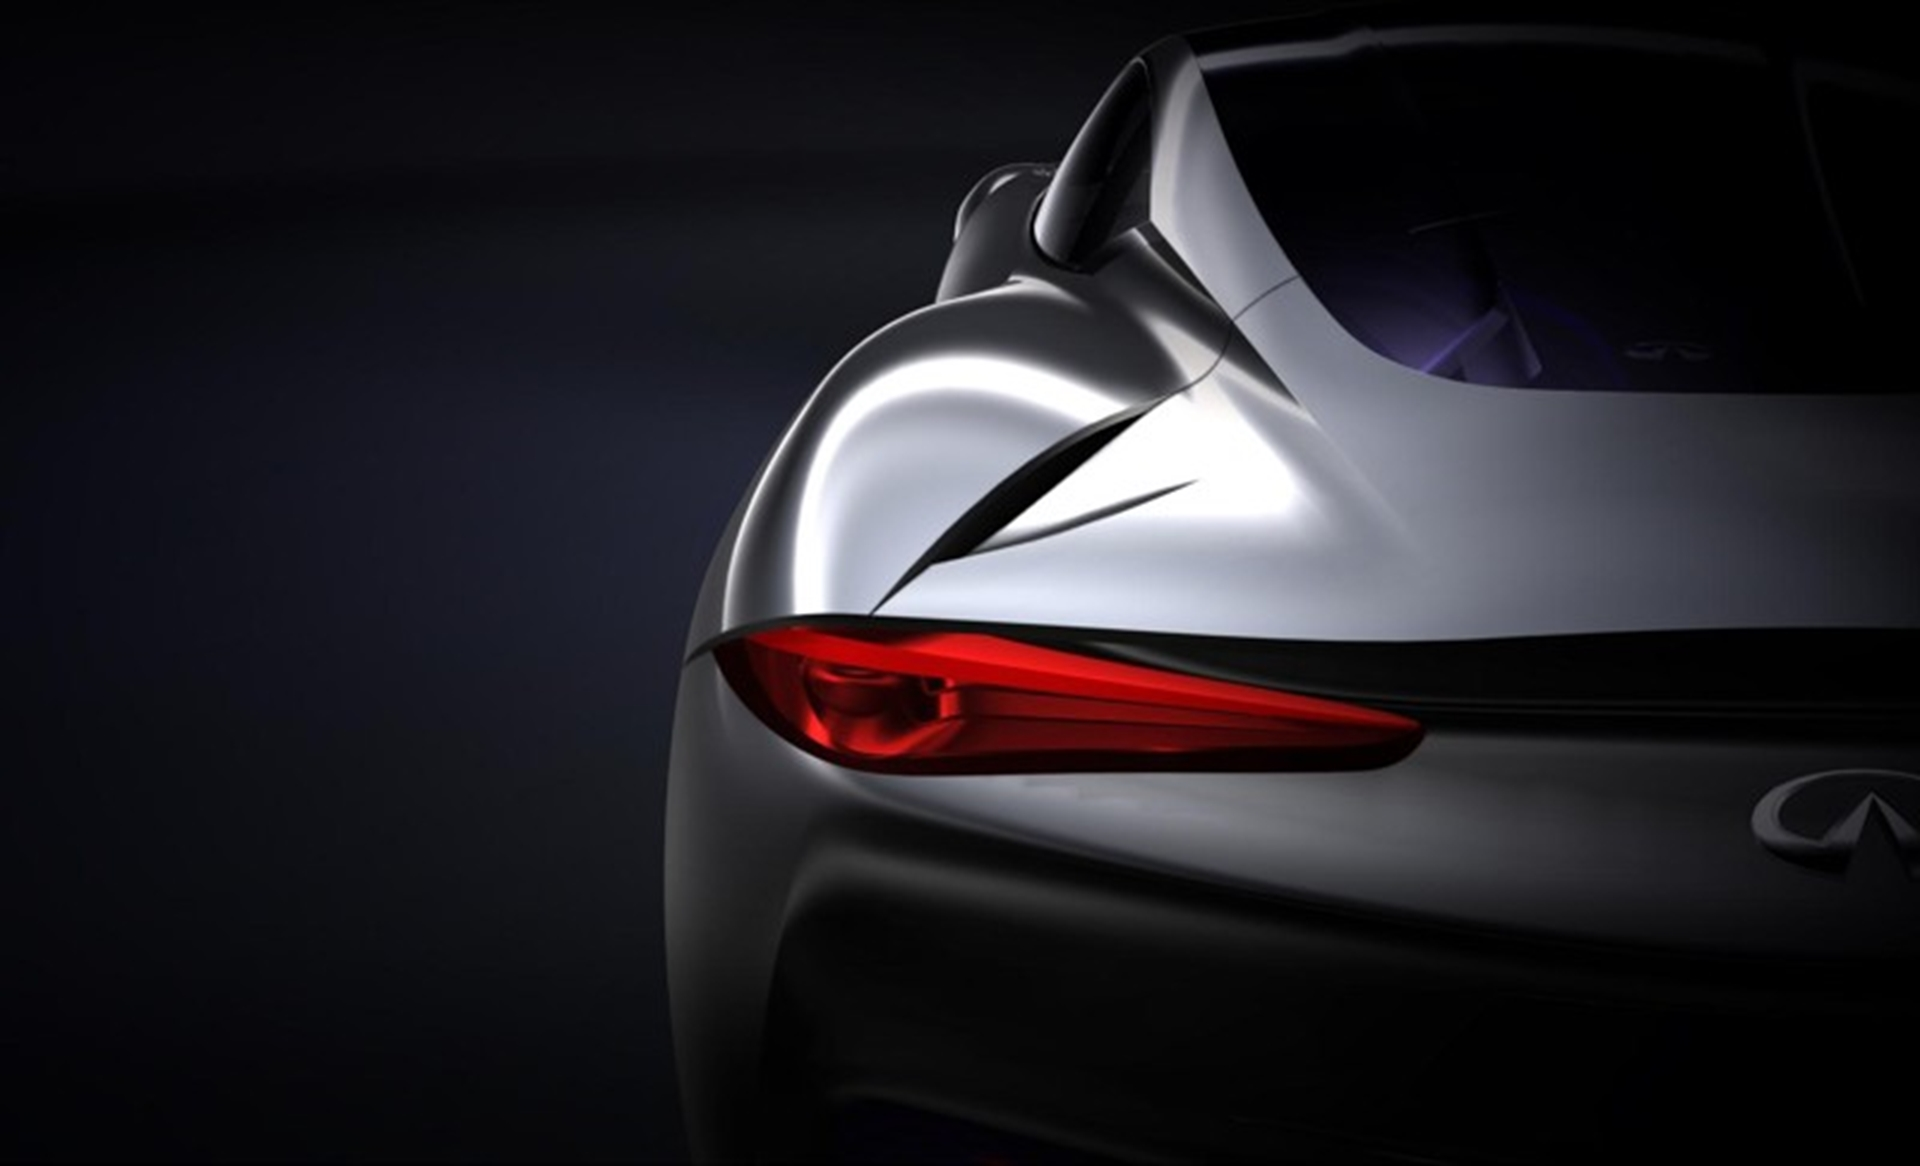 infiniti-sports-car-concept-rear-view